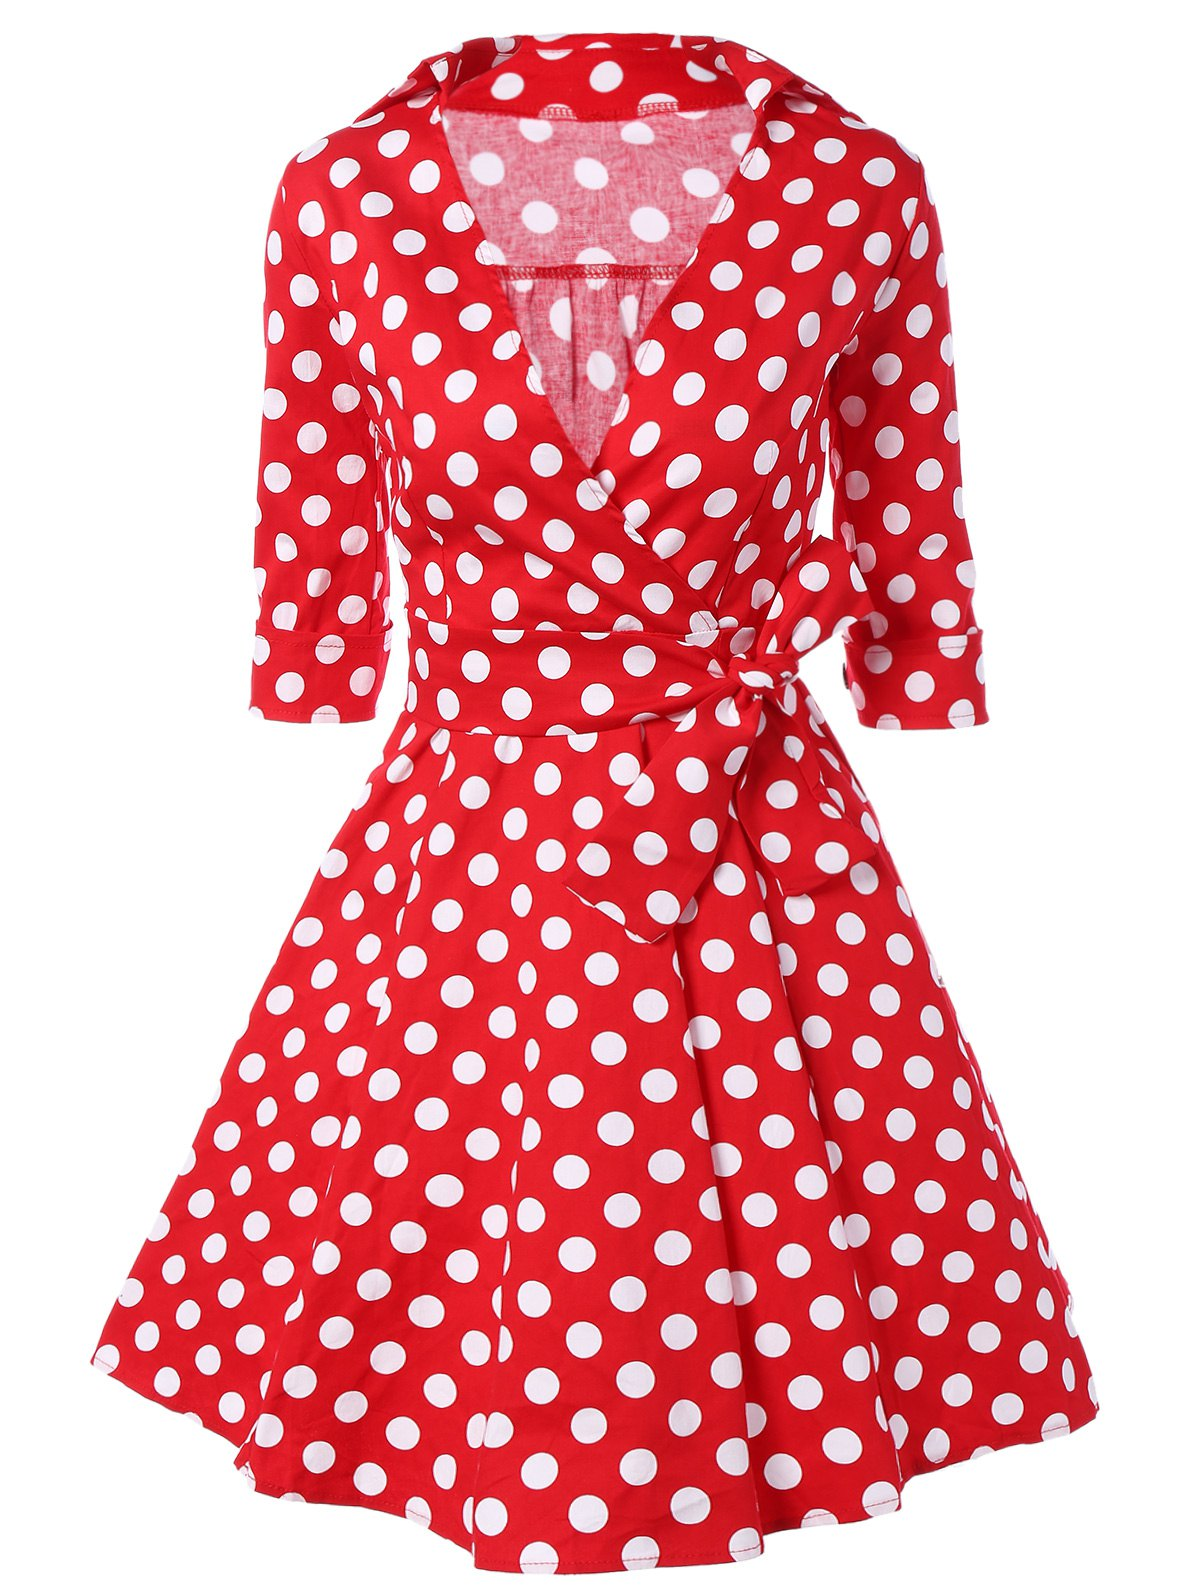 Fashion Low Cut Polka Dot Swing Dress